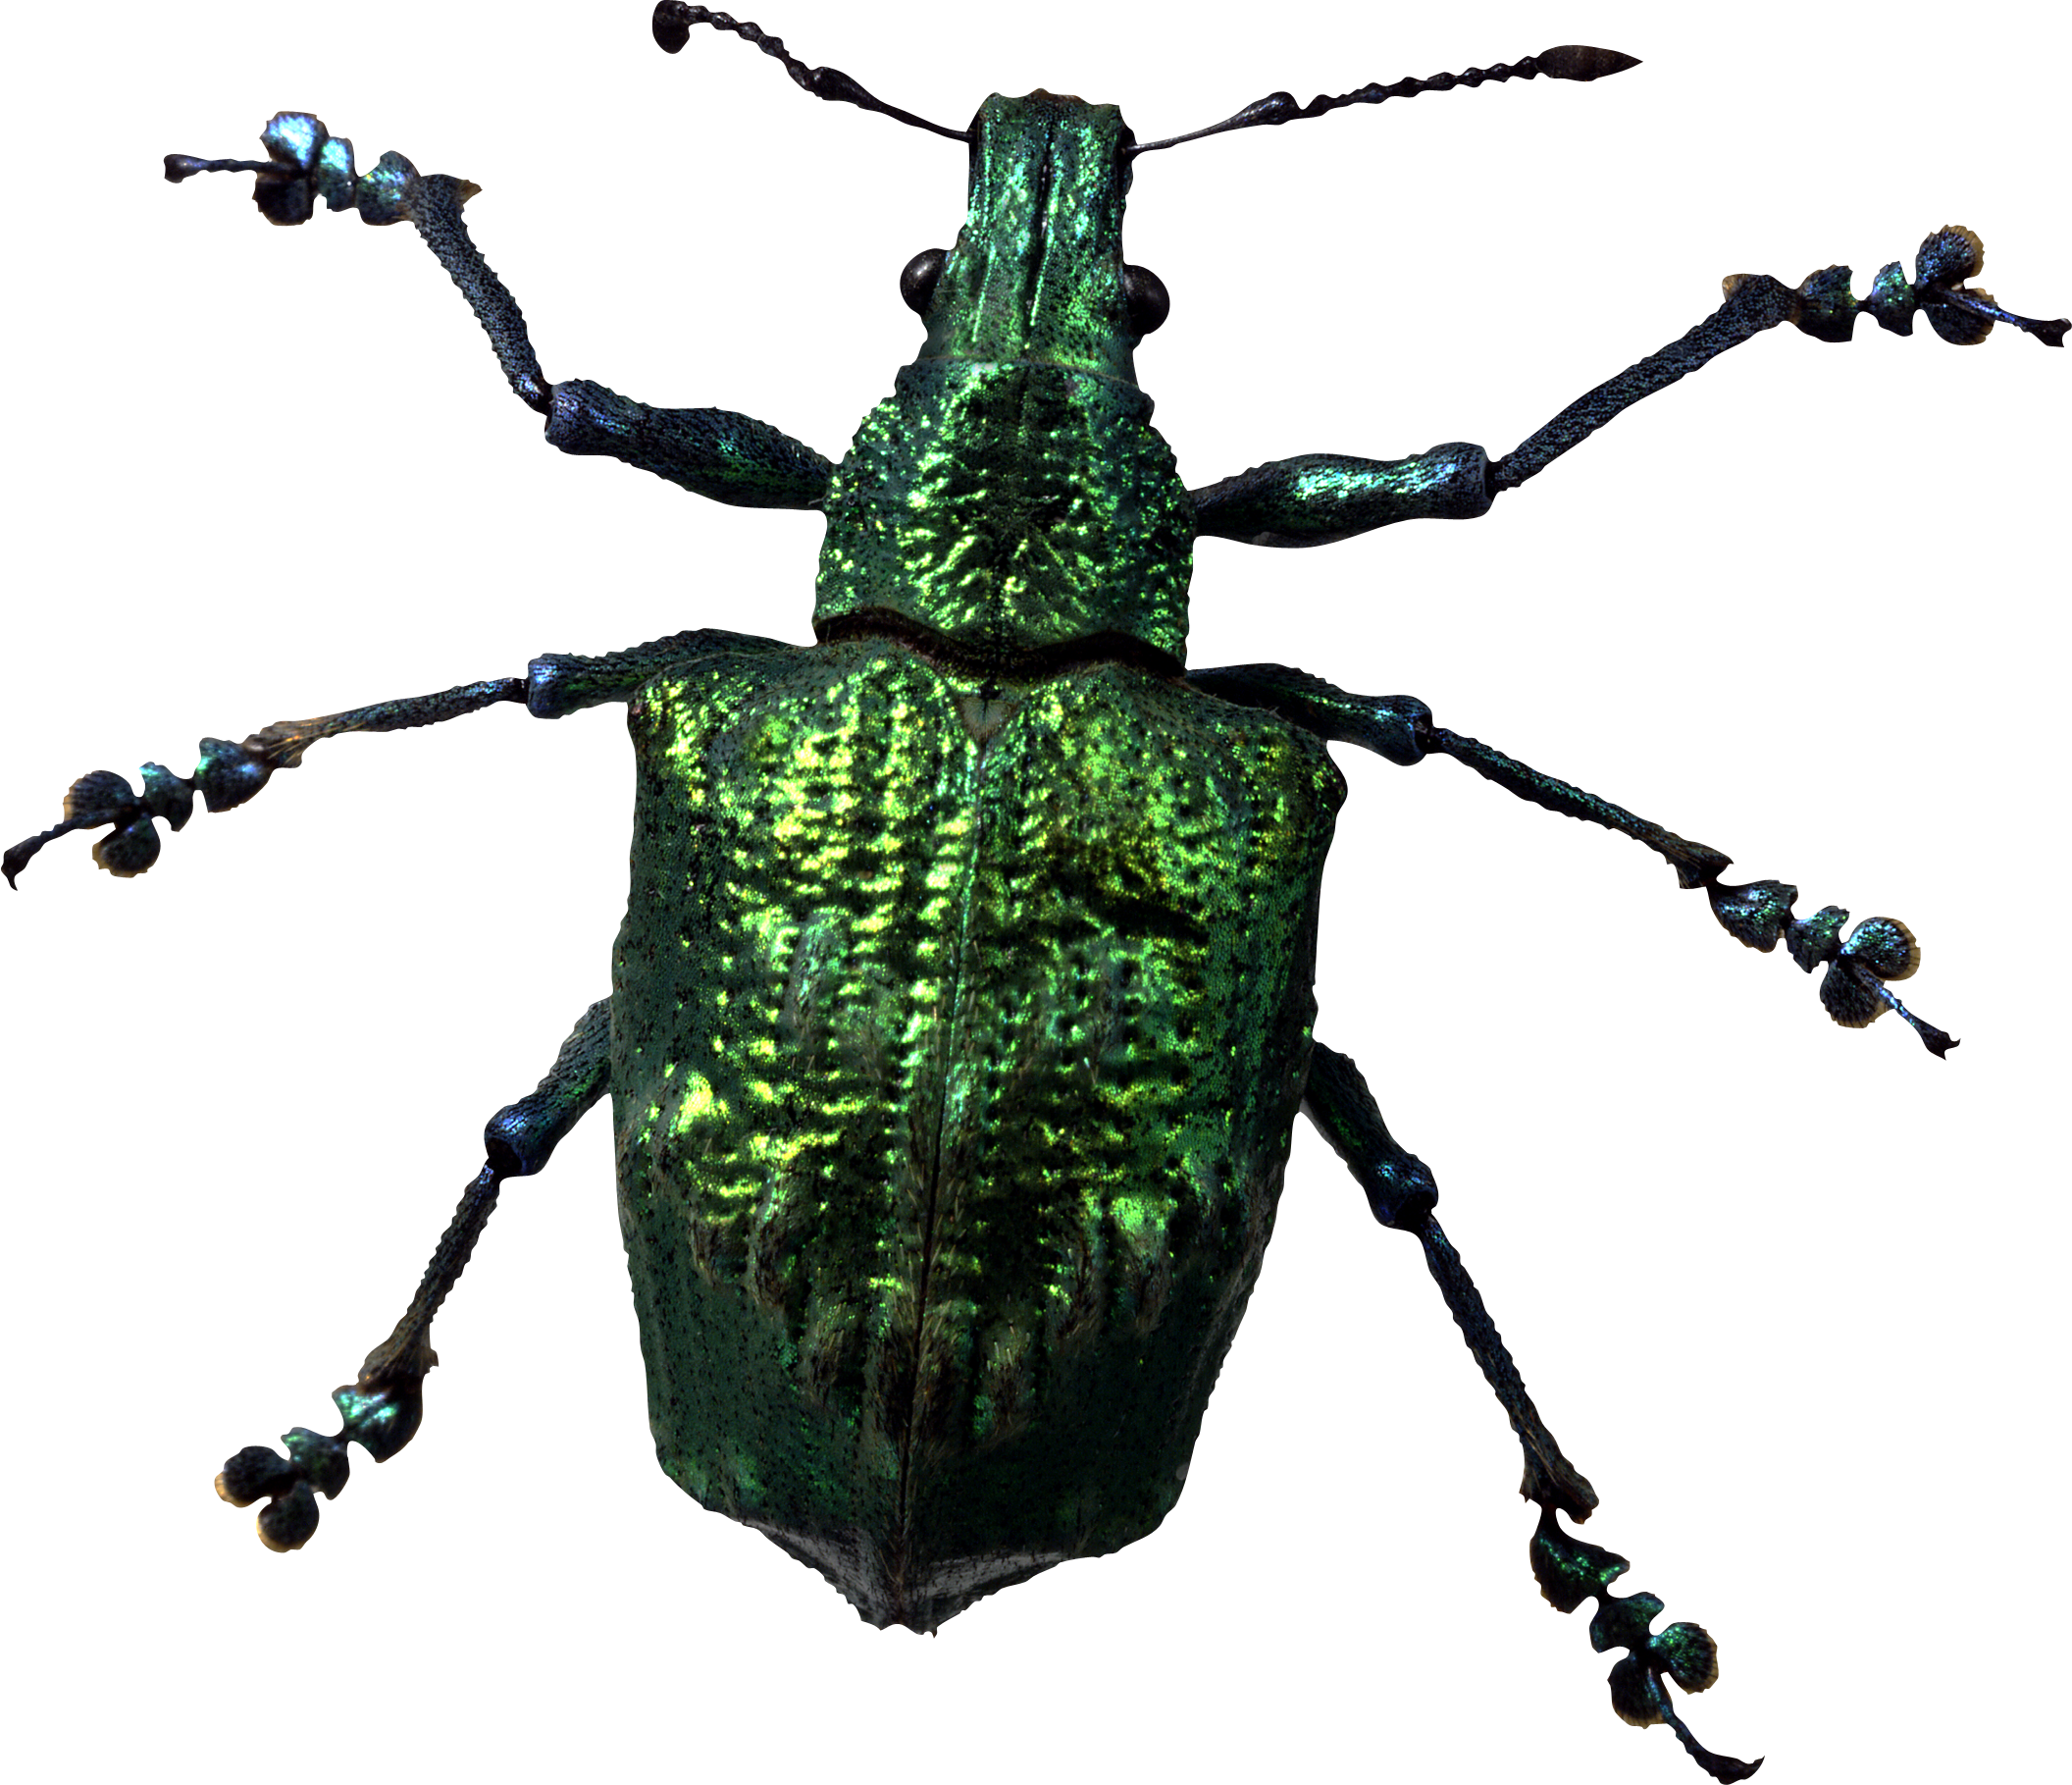 Insect png images all. Beetle transparent translucent graphic black and white